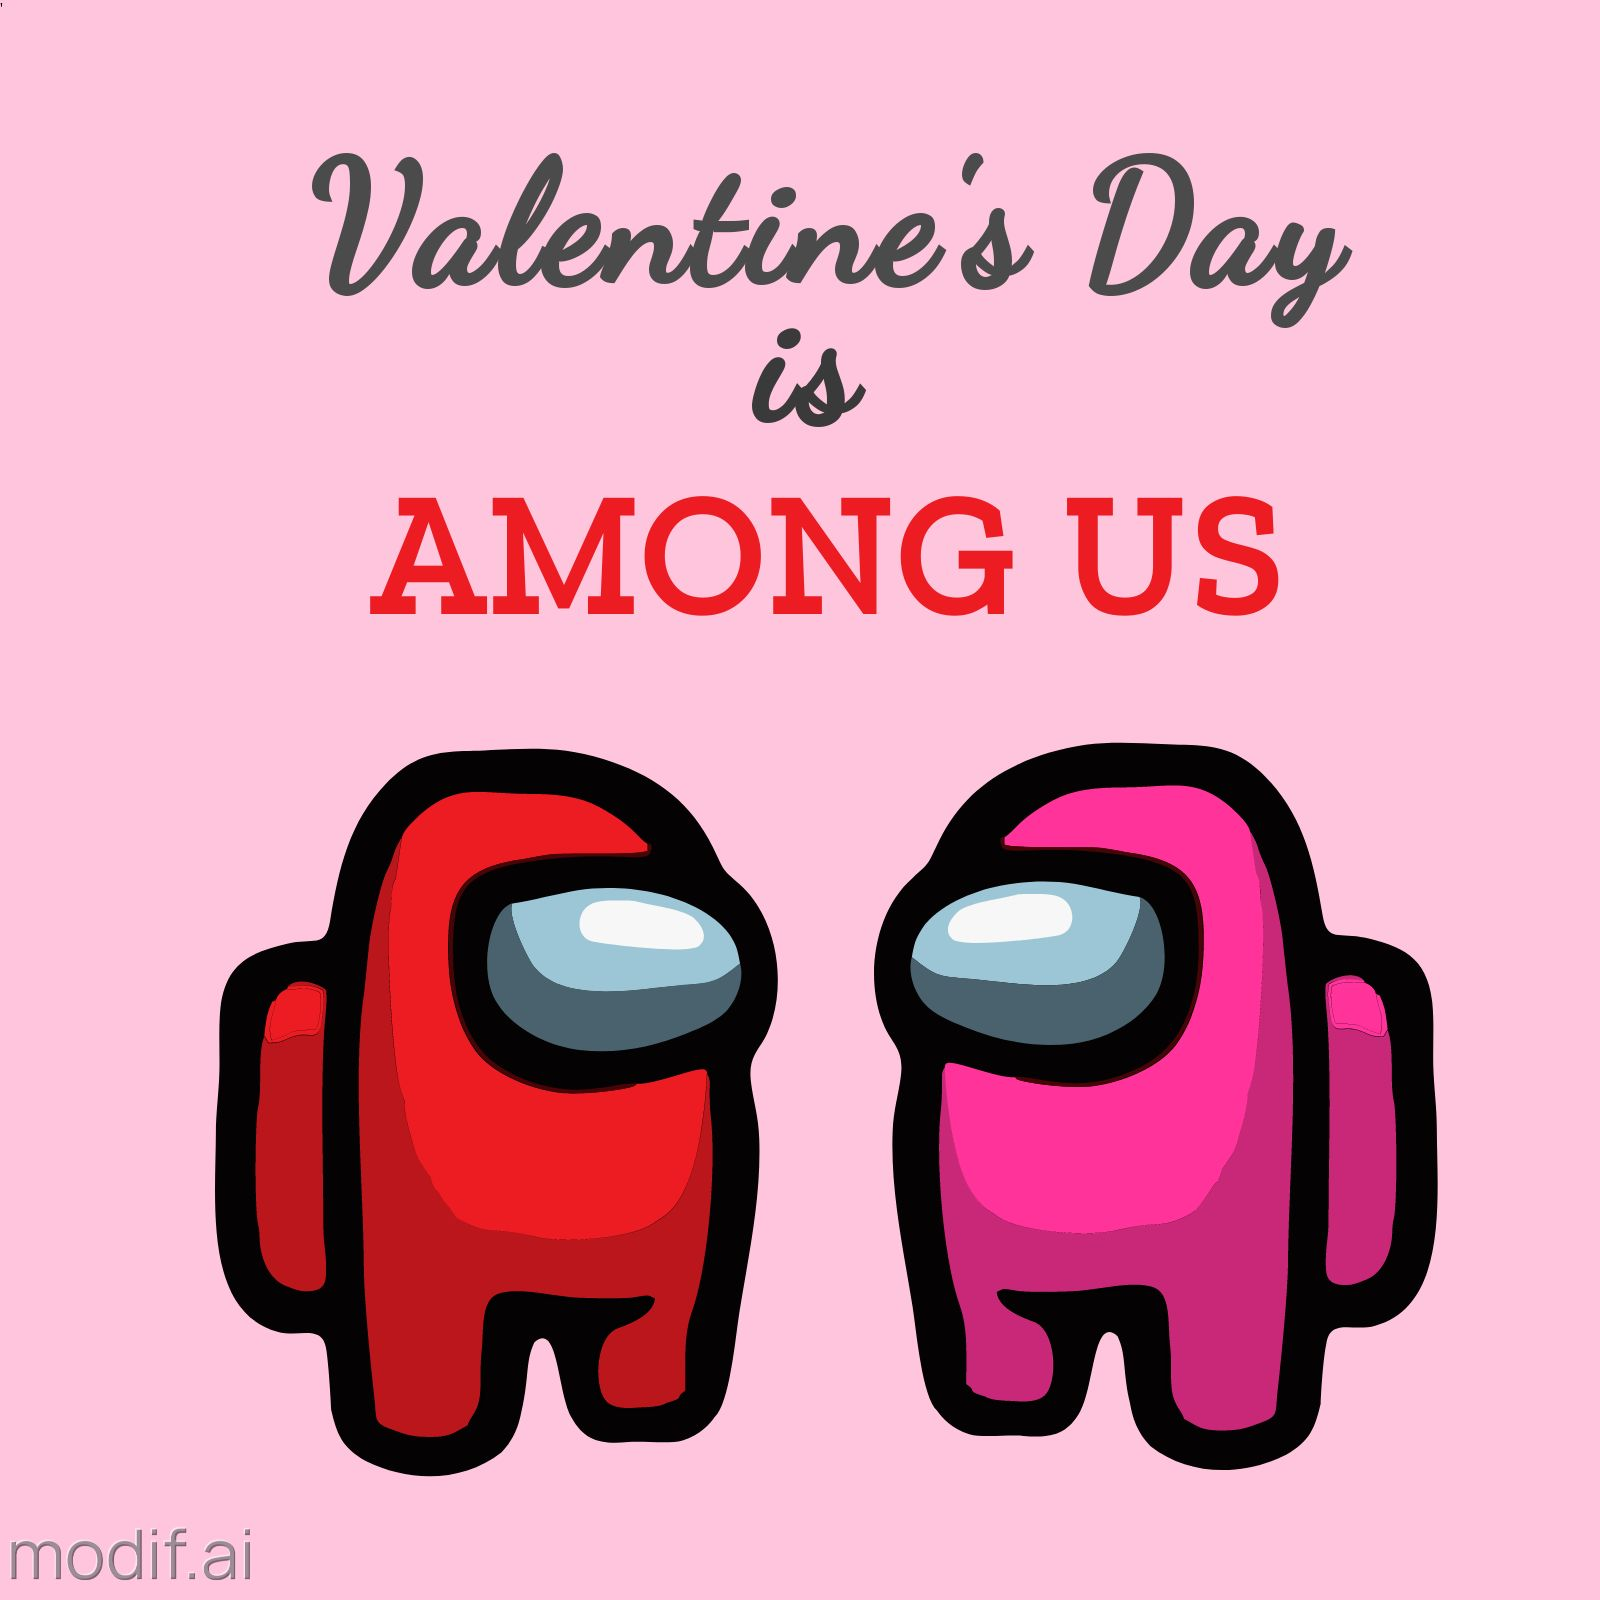 Among Us Valentines Day Template